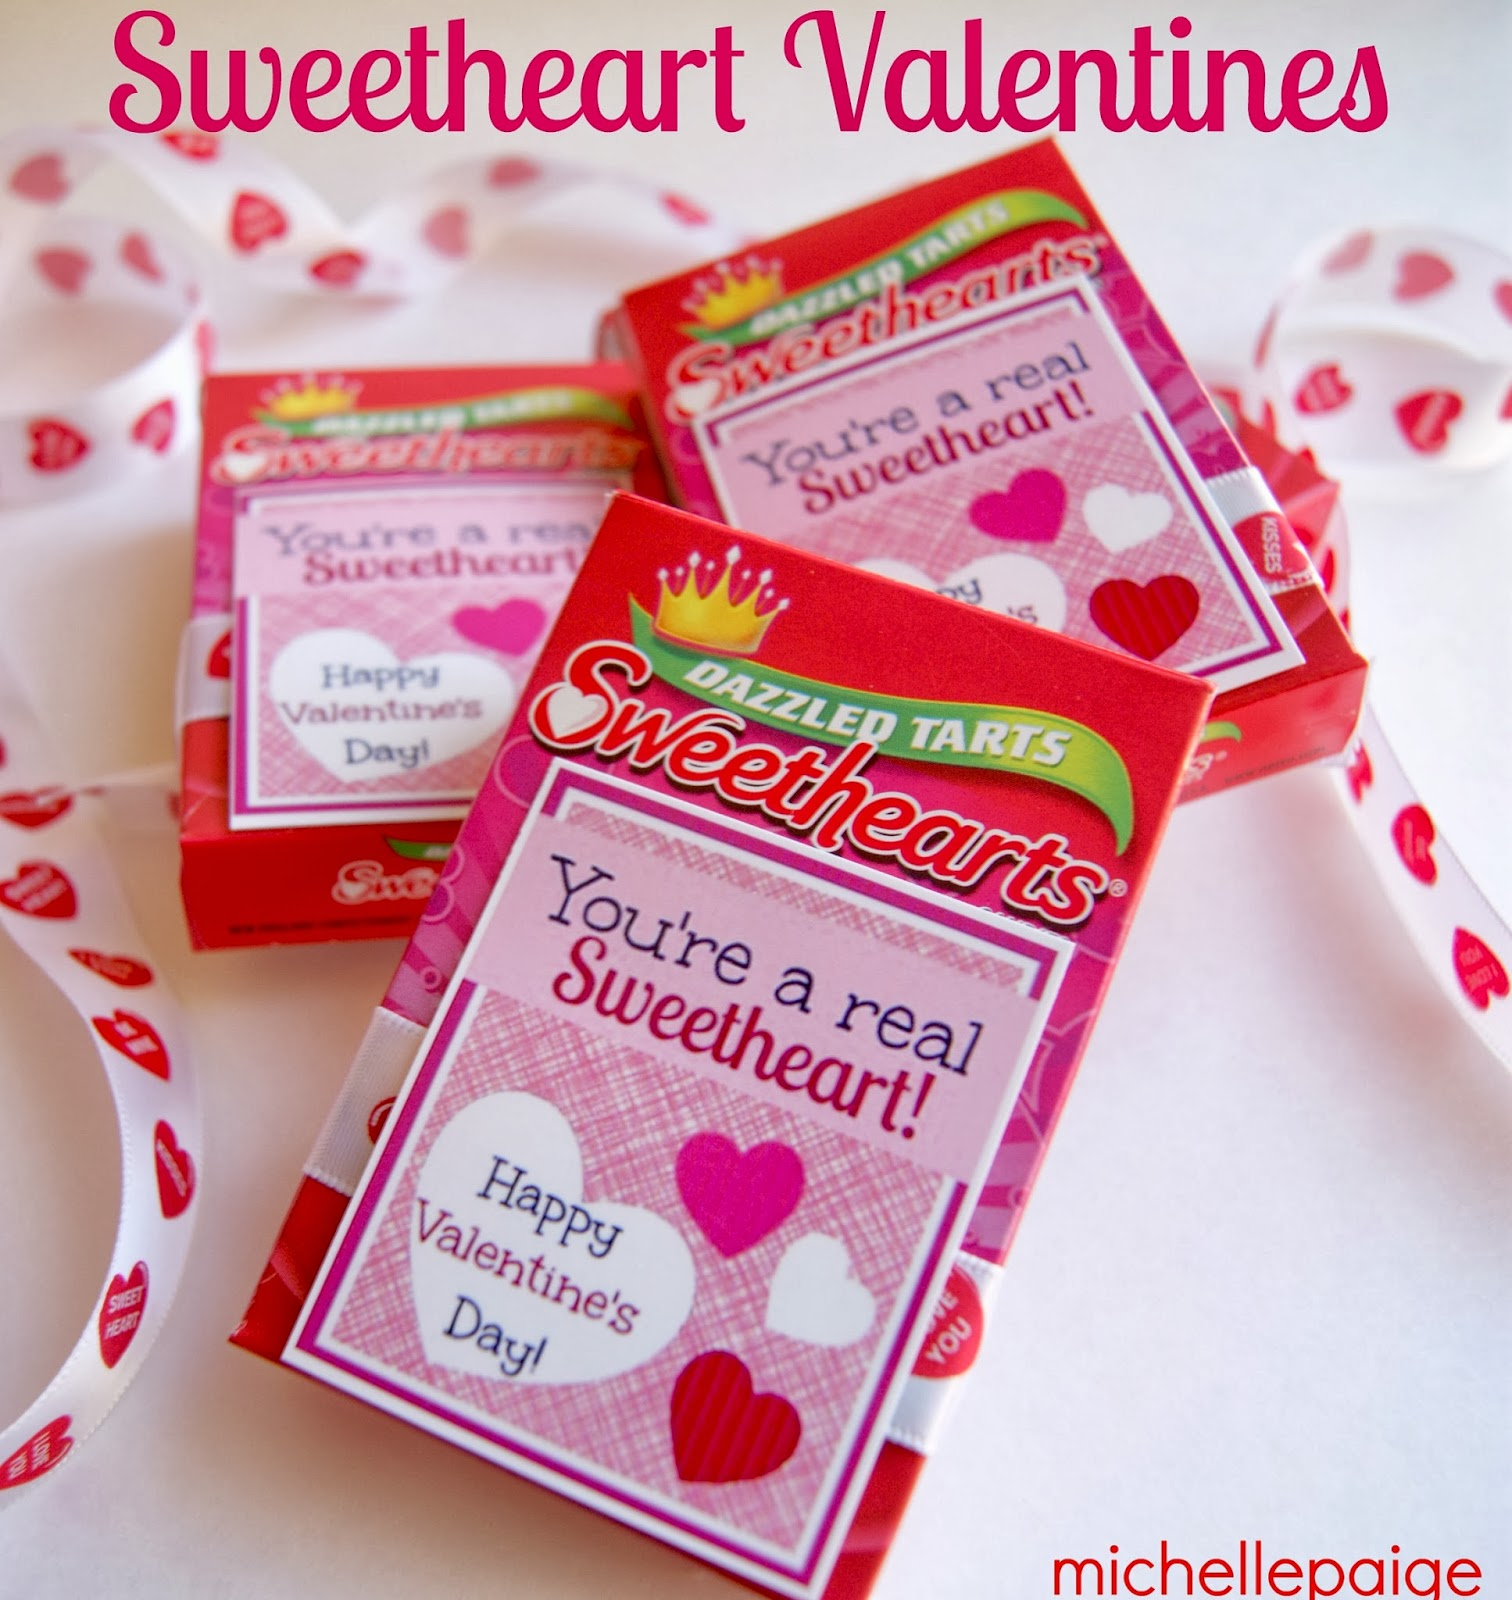 Sweetheart Valentines